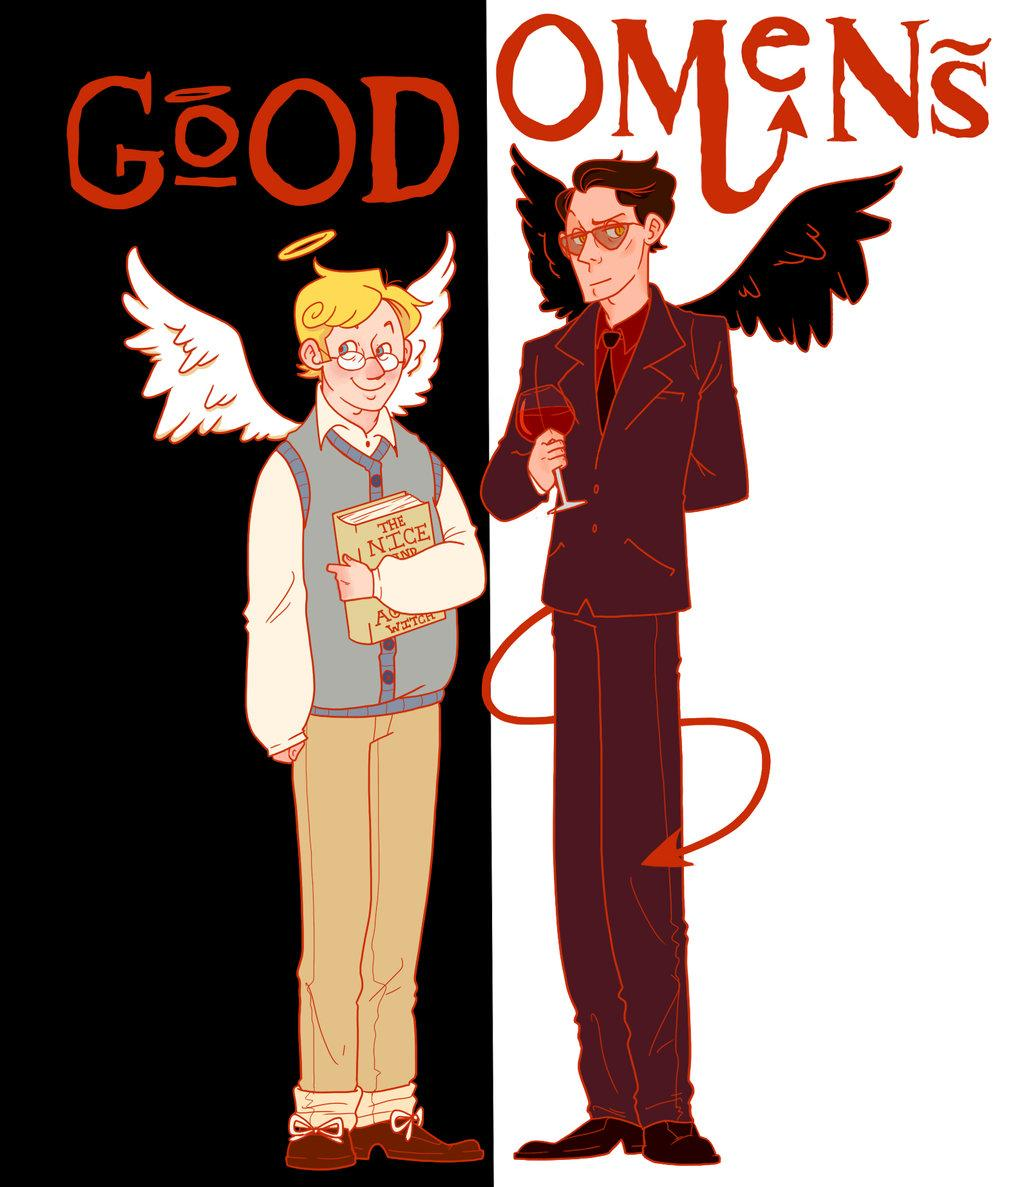 Quotes about Good Omens